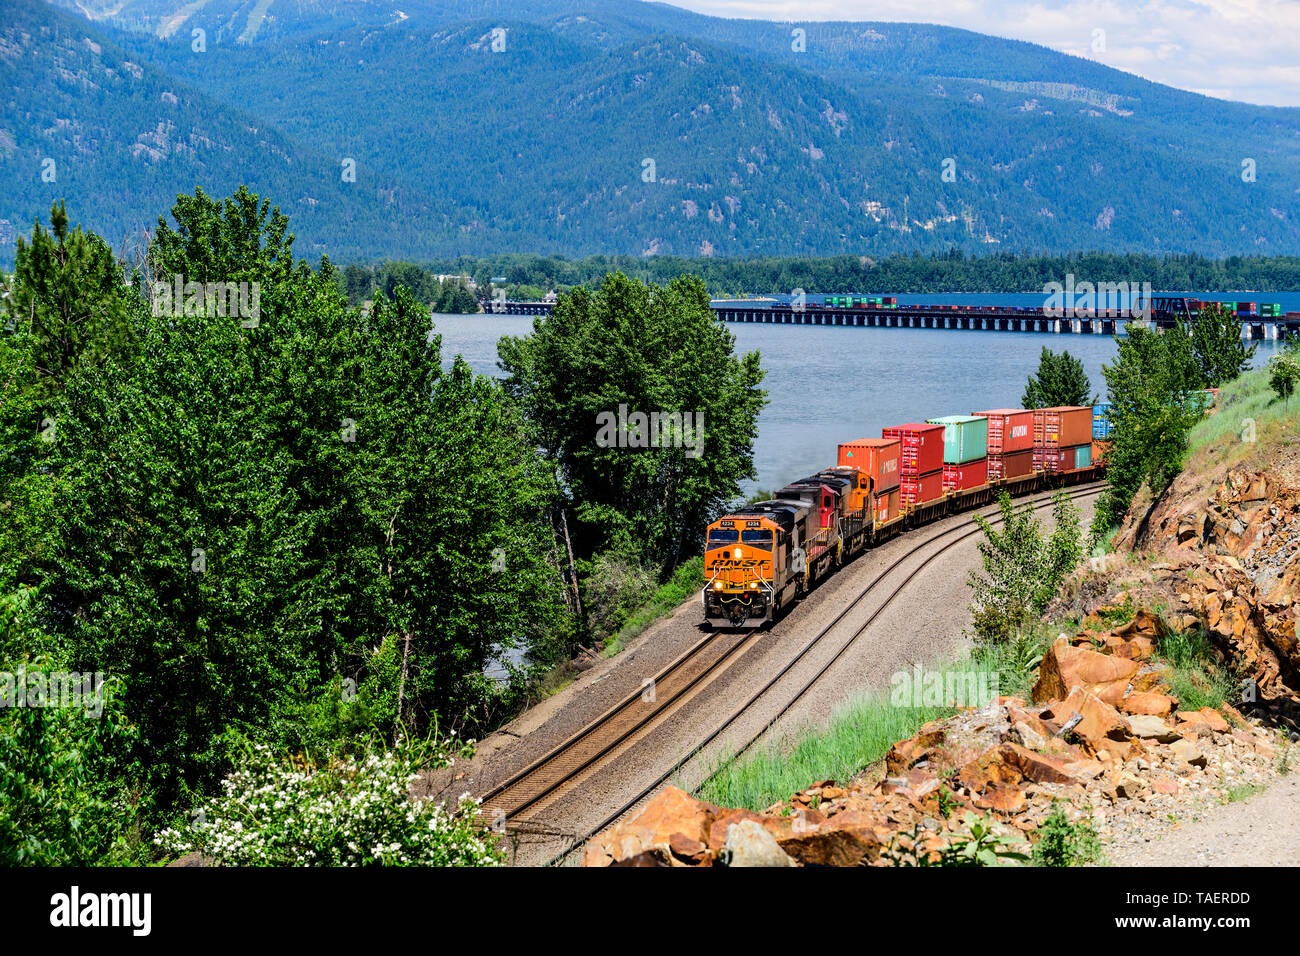 BNSF train along Lake Pend Oreille near Sandpoint, Idaho, USA - Stock Image